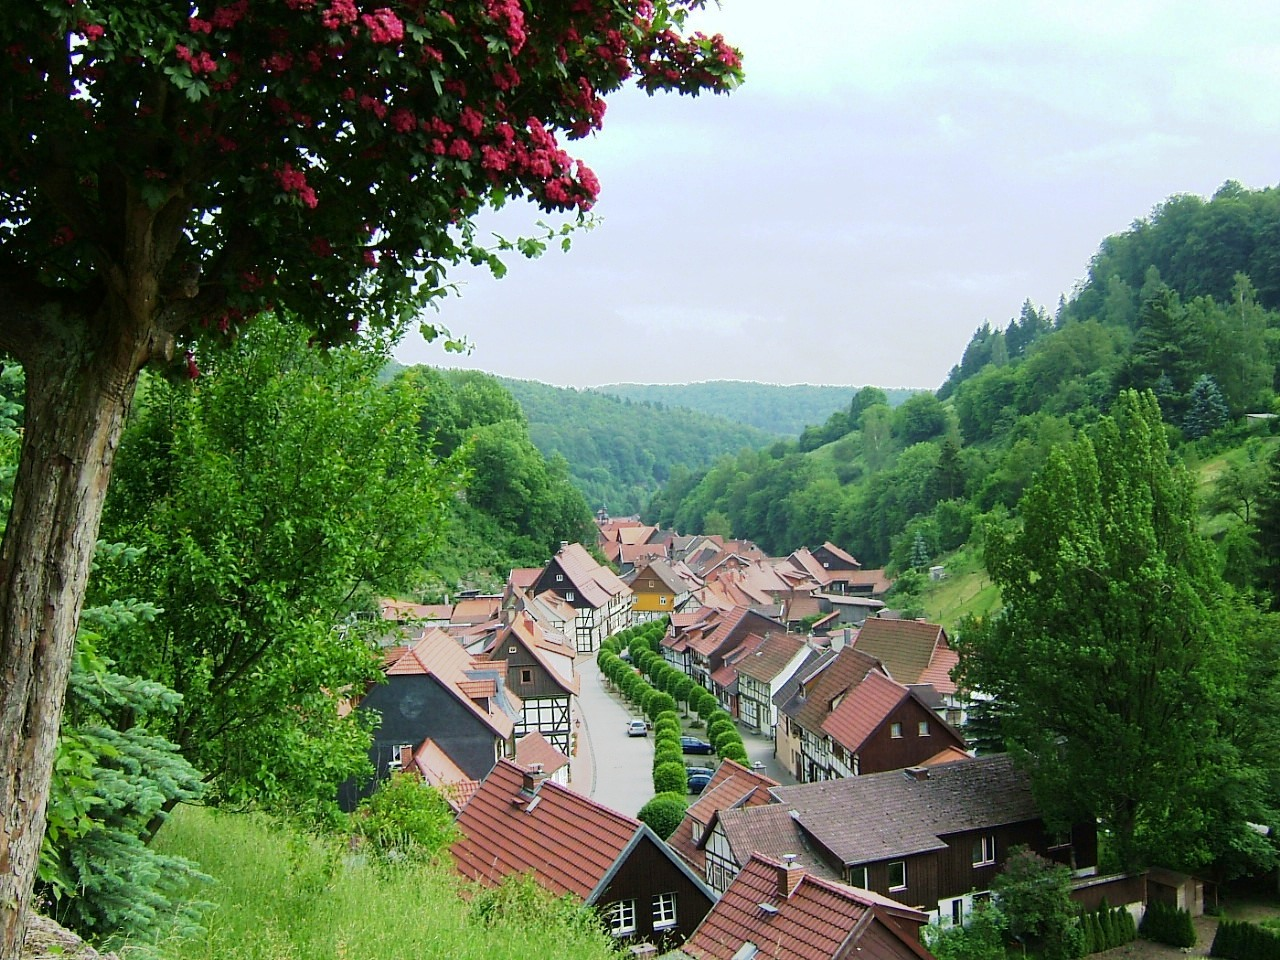 Sleepy town in the Harz Mountains